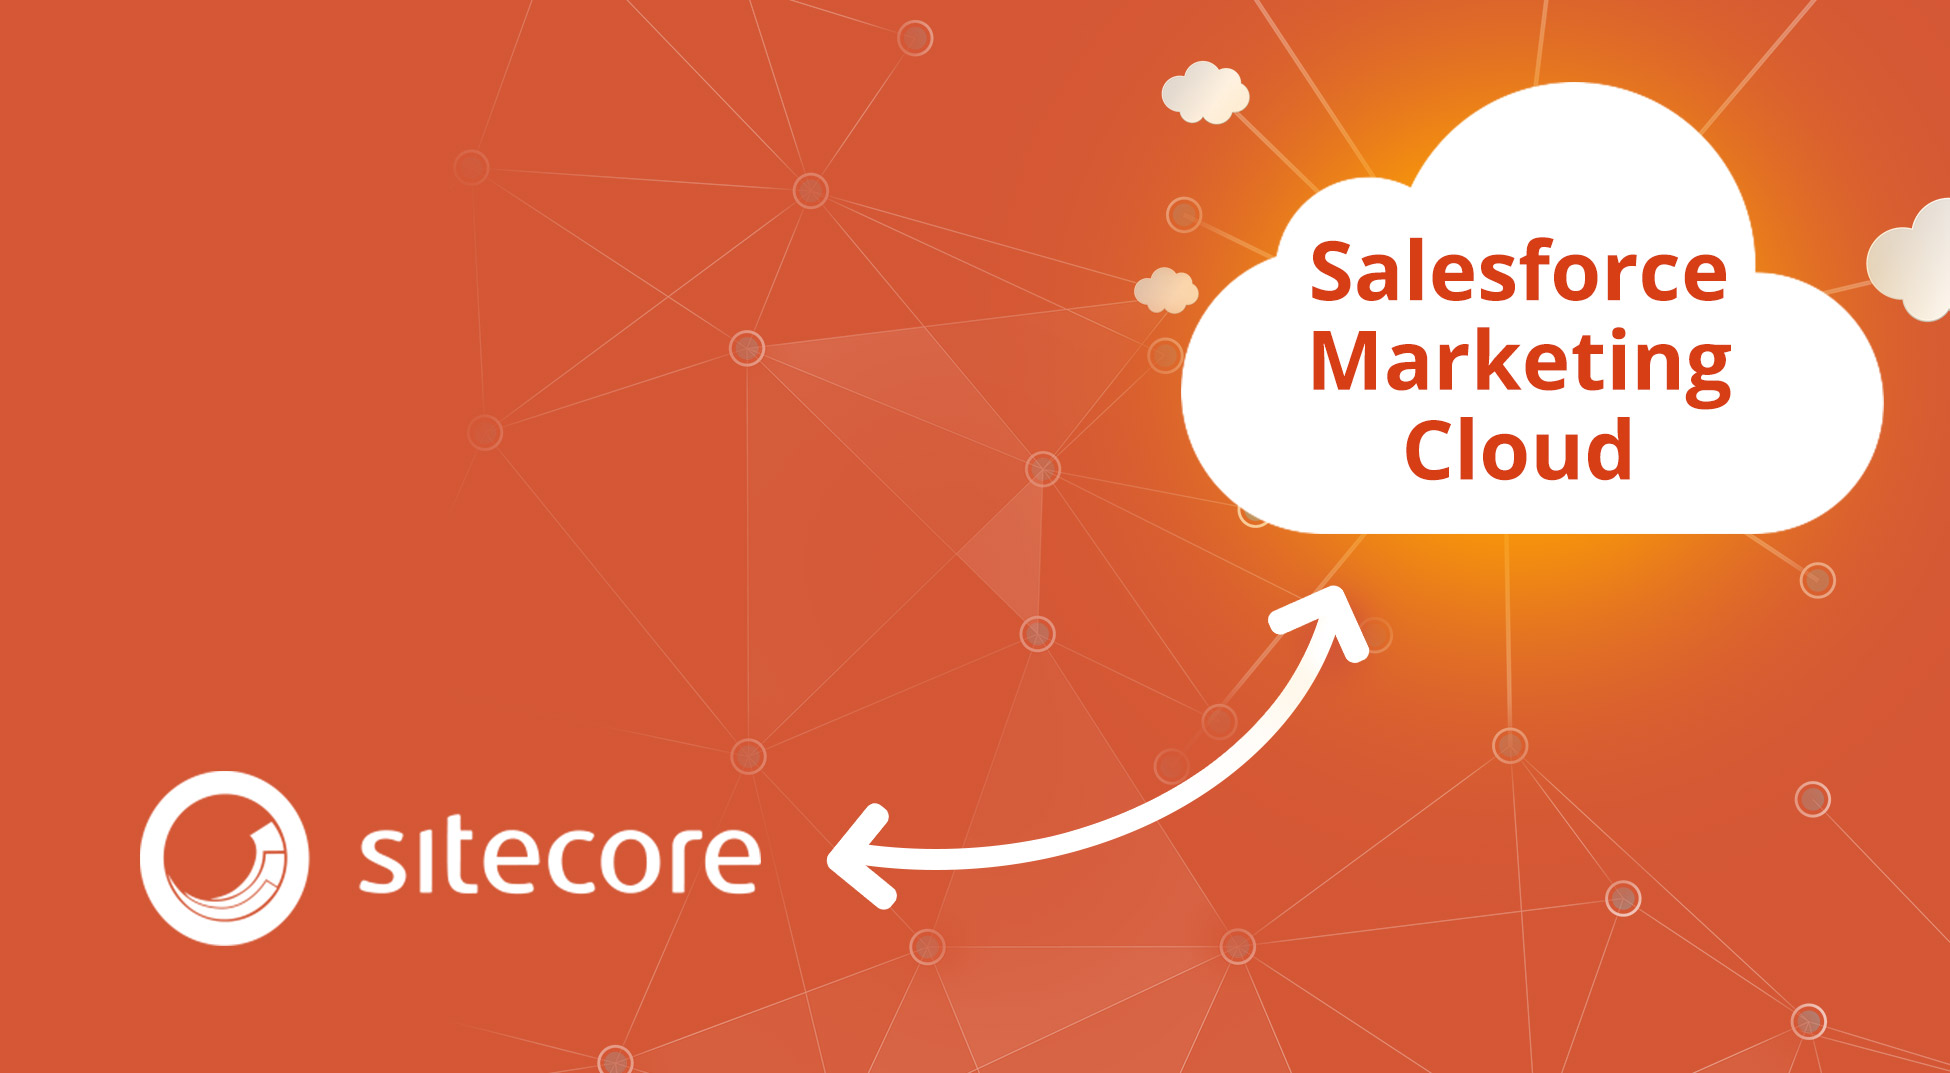 De-Stress Overworked Marketers with Sitecore Connect Software for Salesforce Marketing Cloud